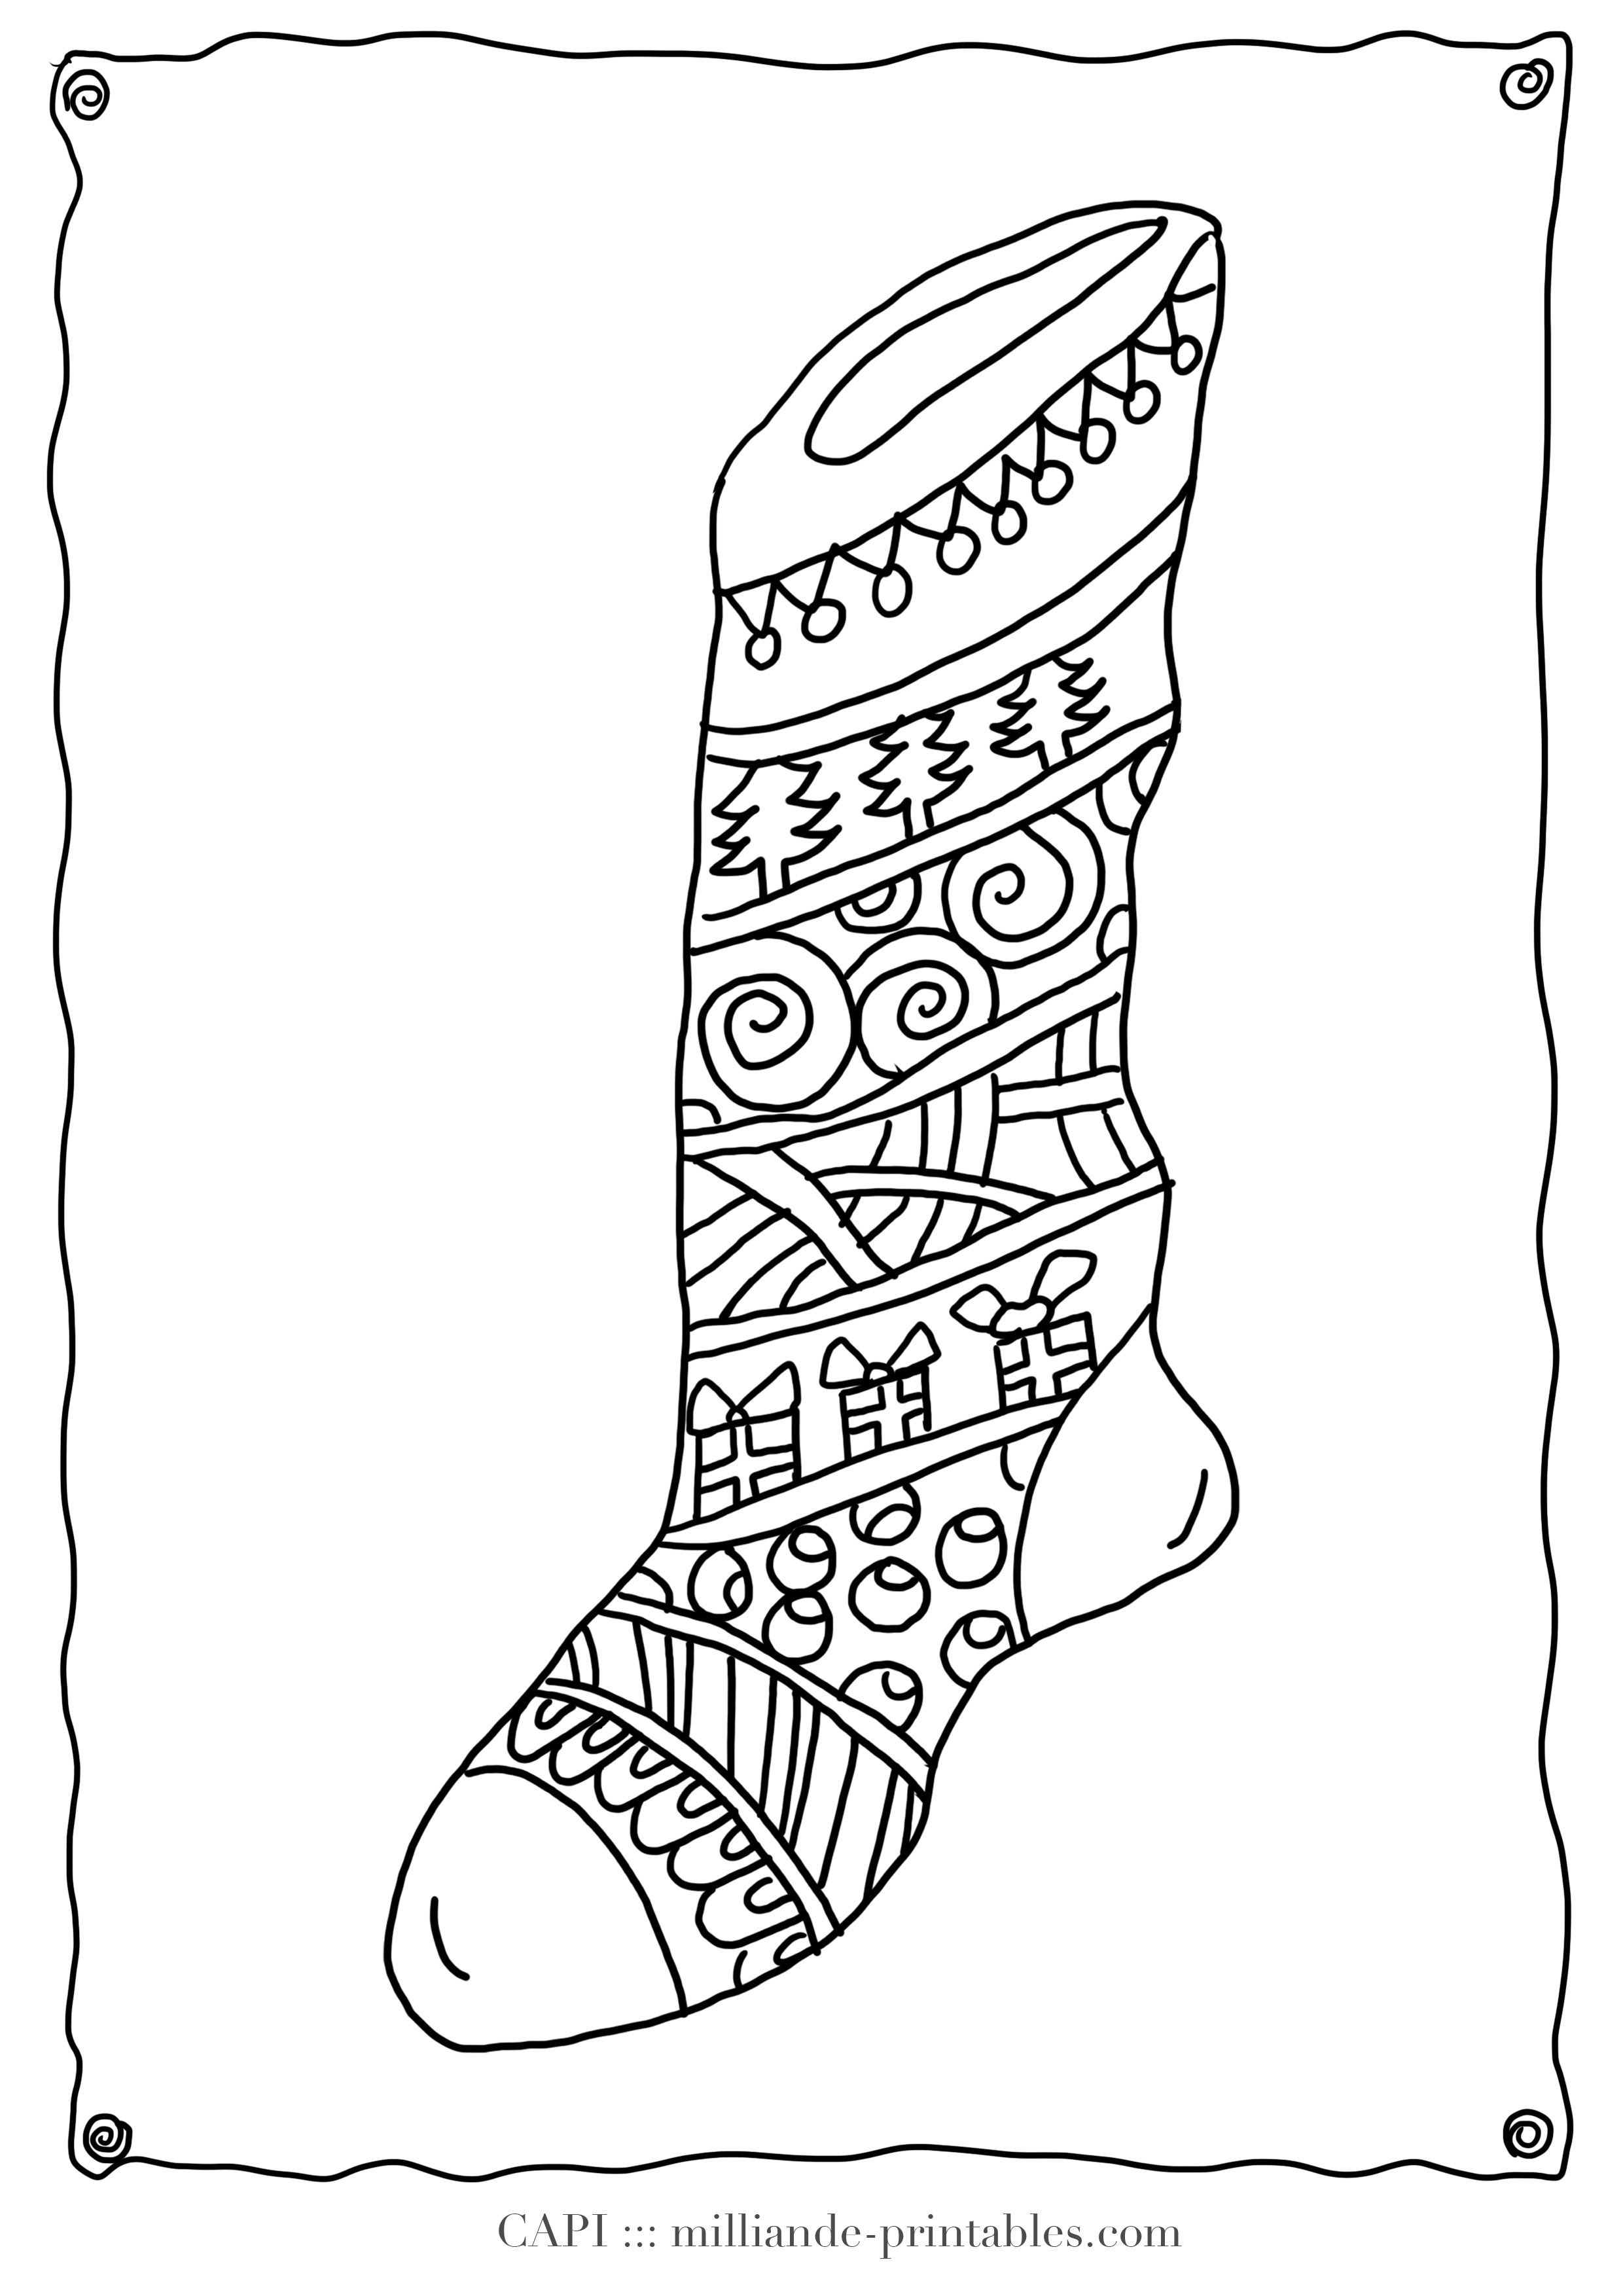 Christmas Coloring Page Stocking , Milliande's Original